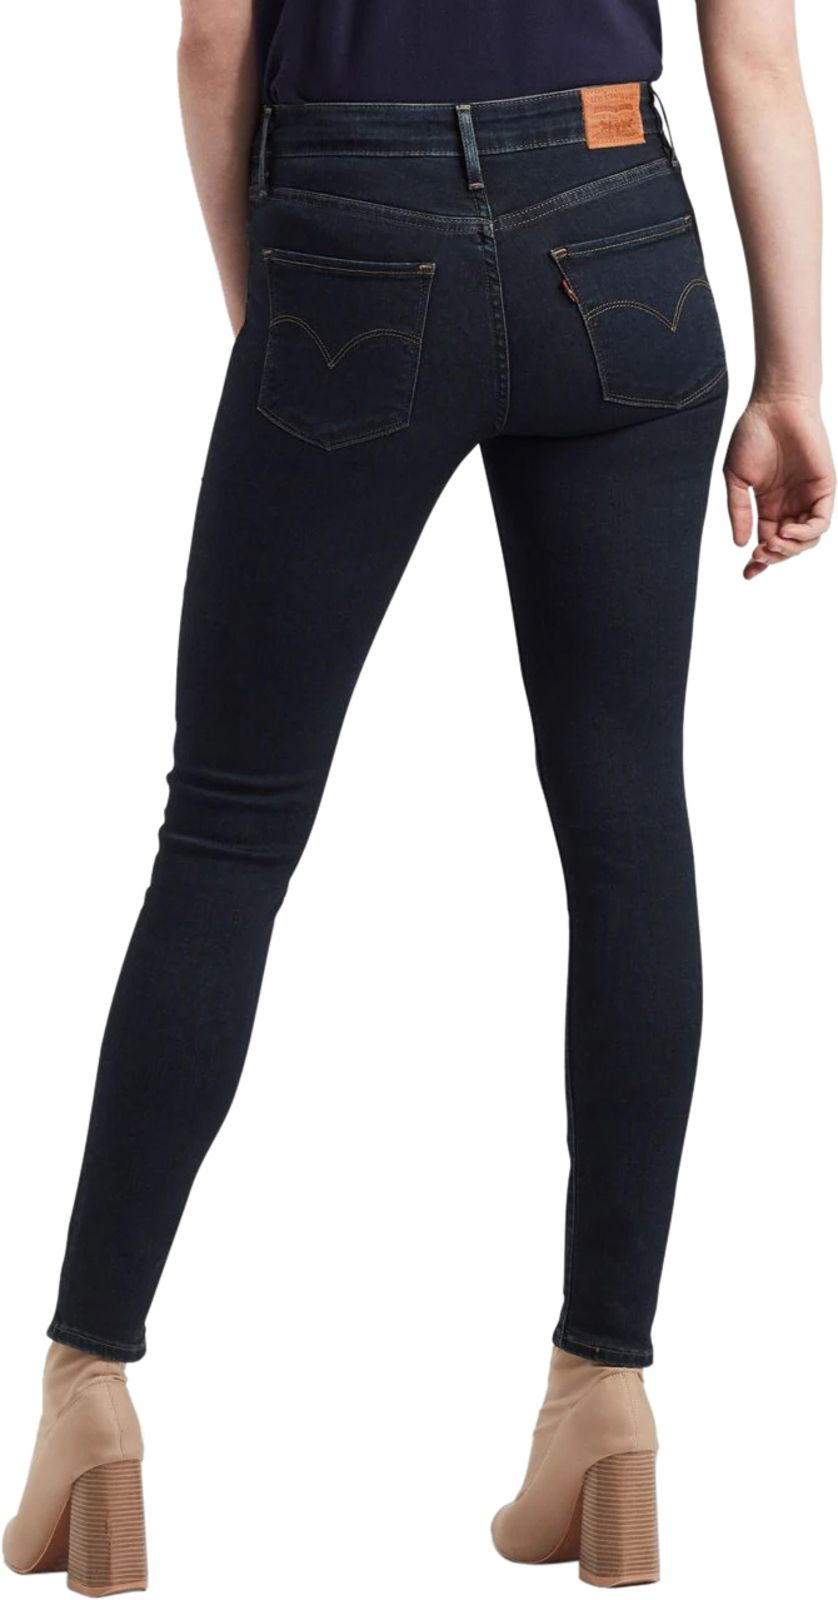 Levi's 721 High Rise Skinny Denim Jeans Navy